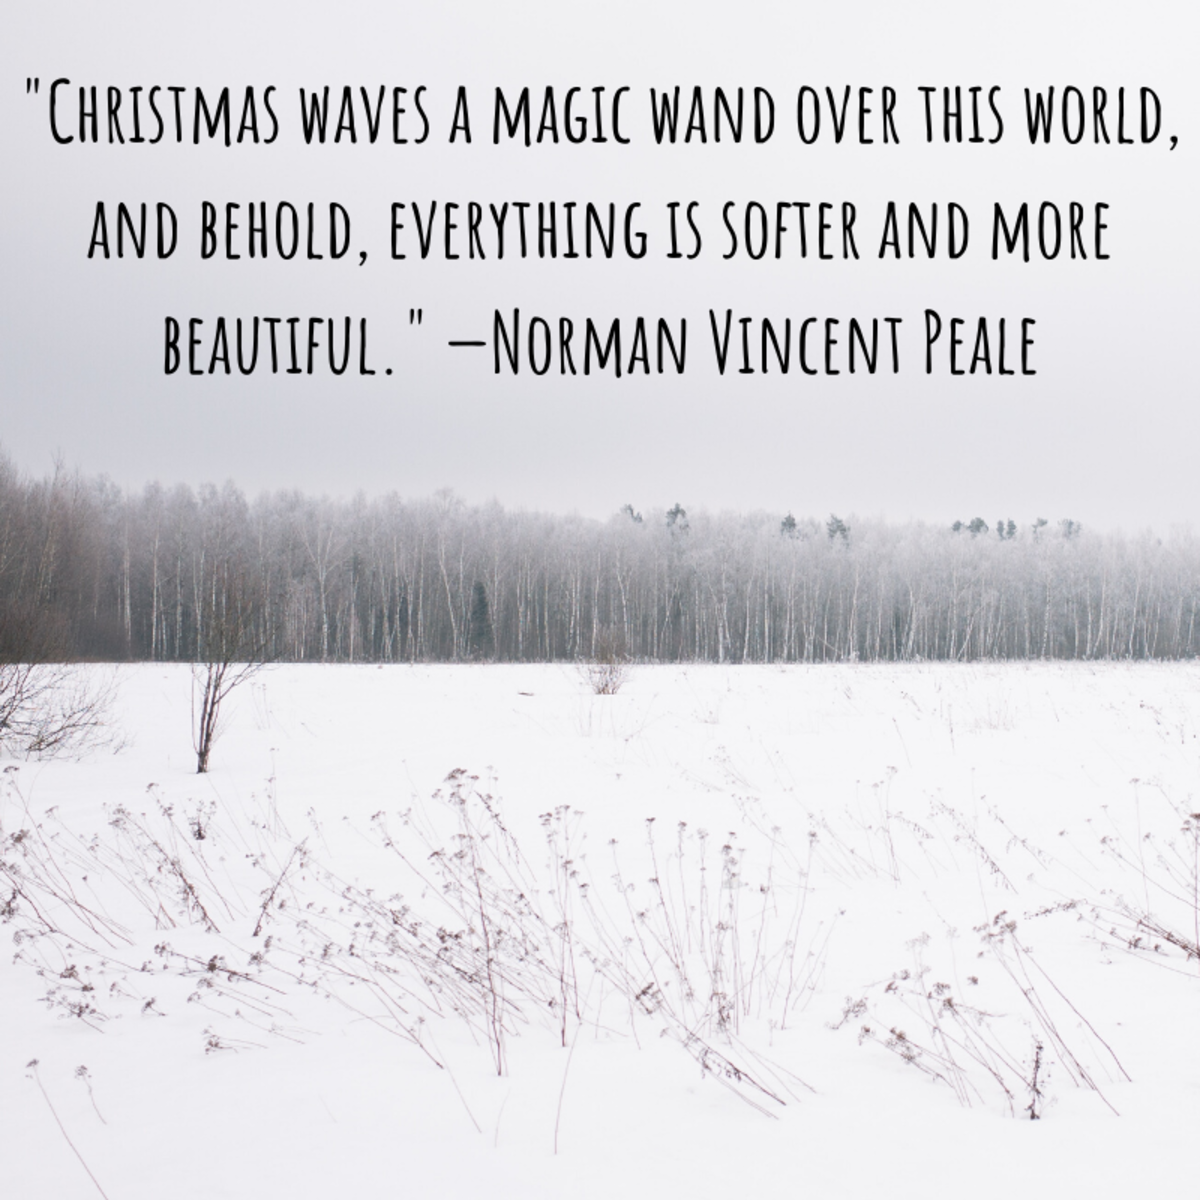 """Christmas waves a magic wand over this world, and behold, everything is softer and more beautiful."" —Norman Vincent Peale"